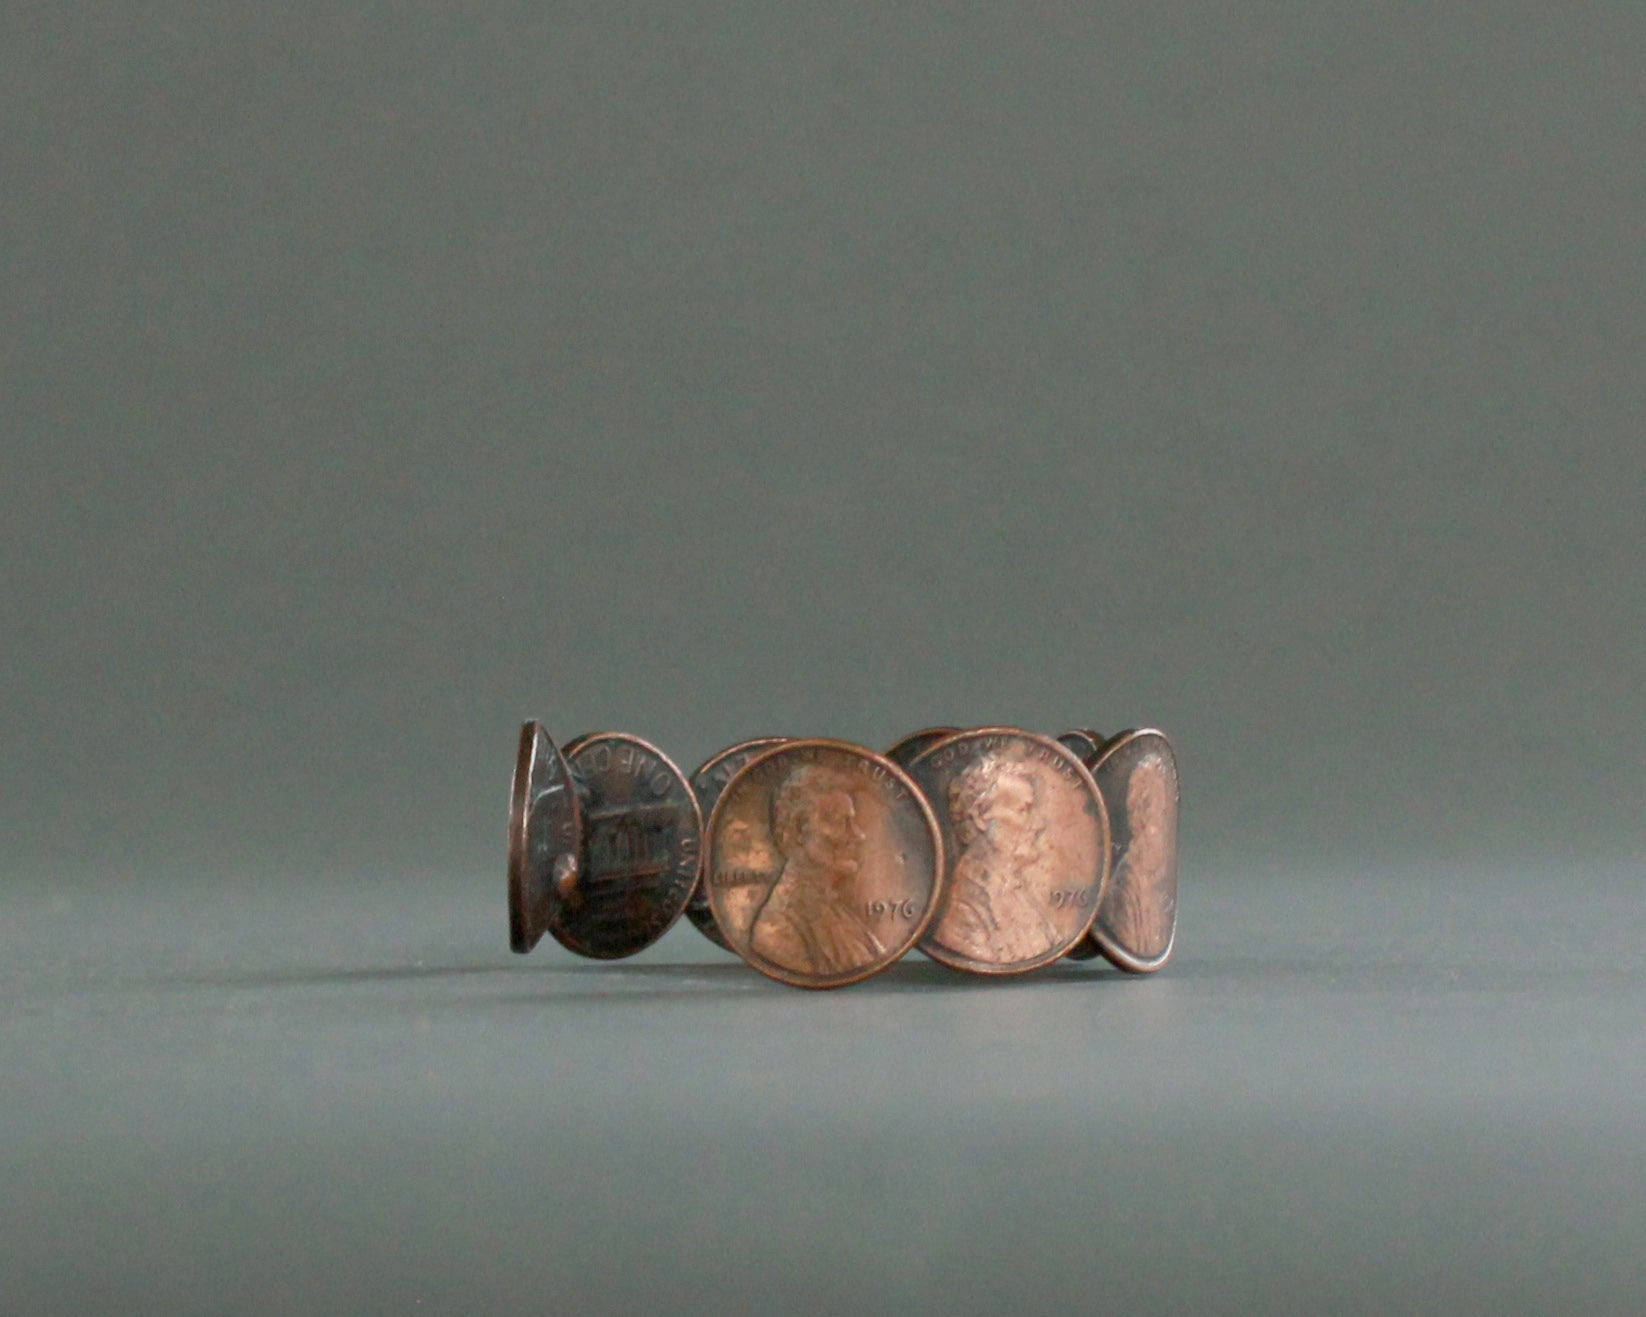 Penny Bracelet from Upcycled 1976 Coins